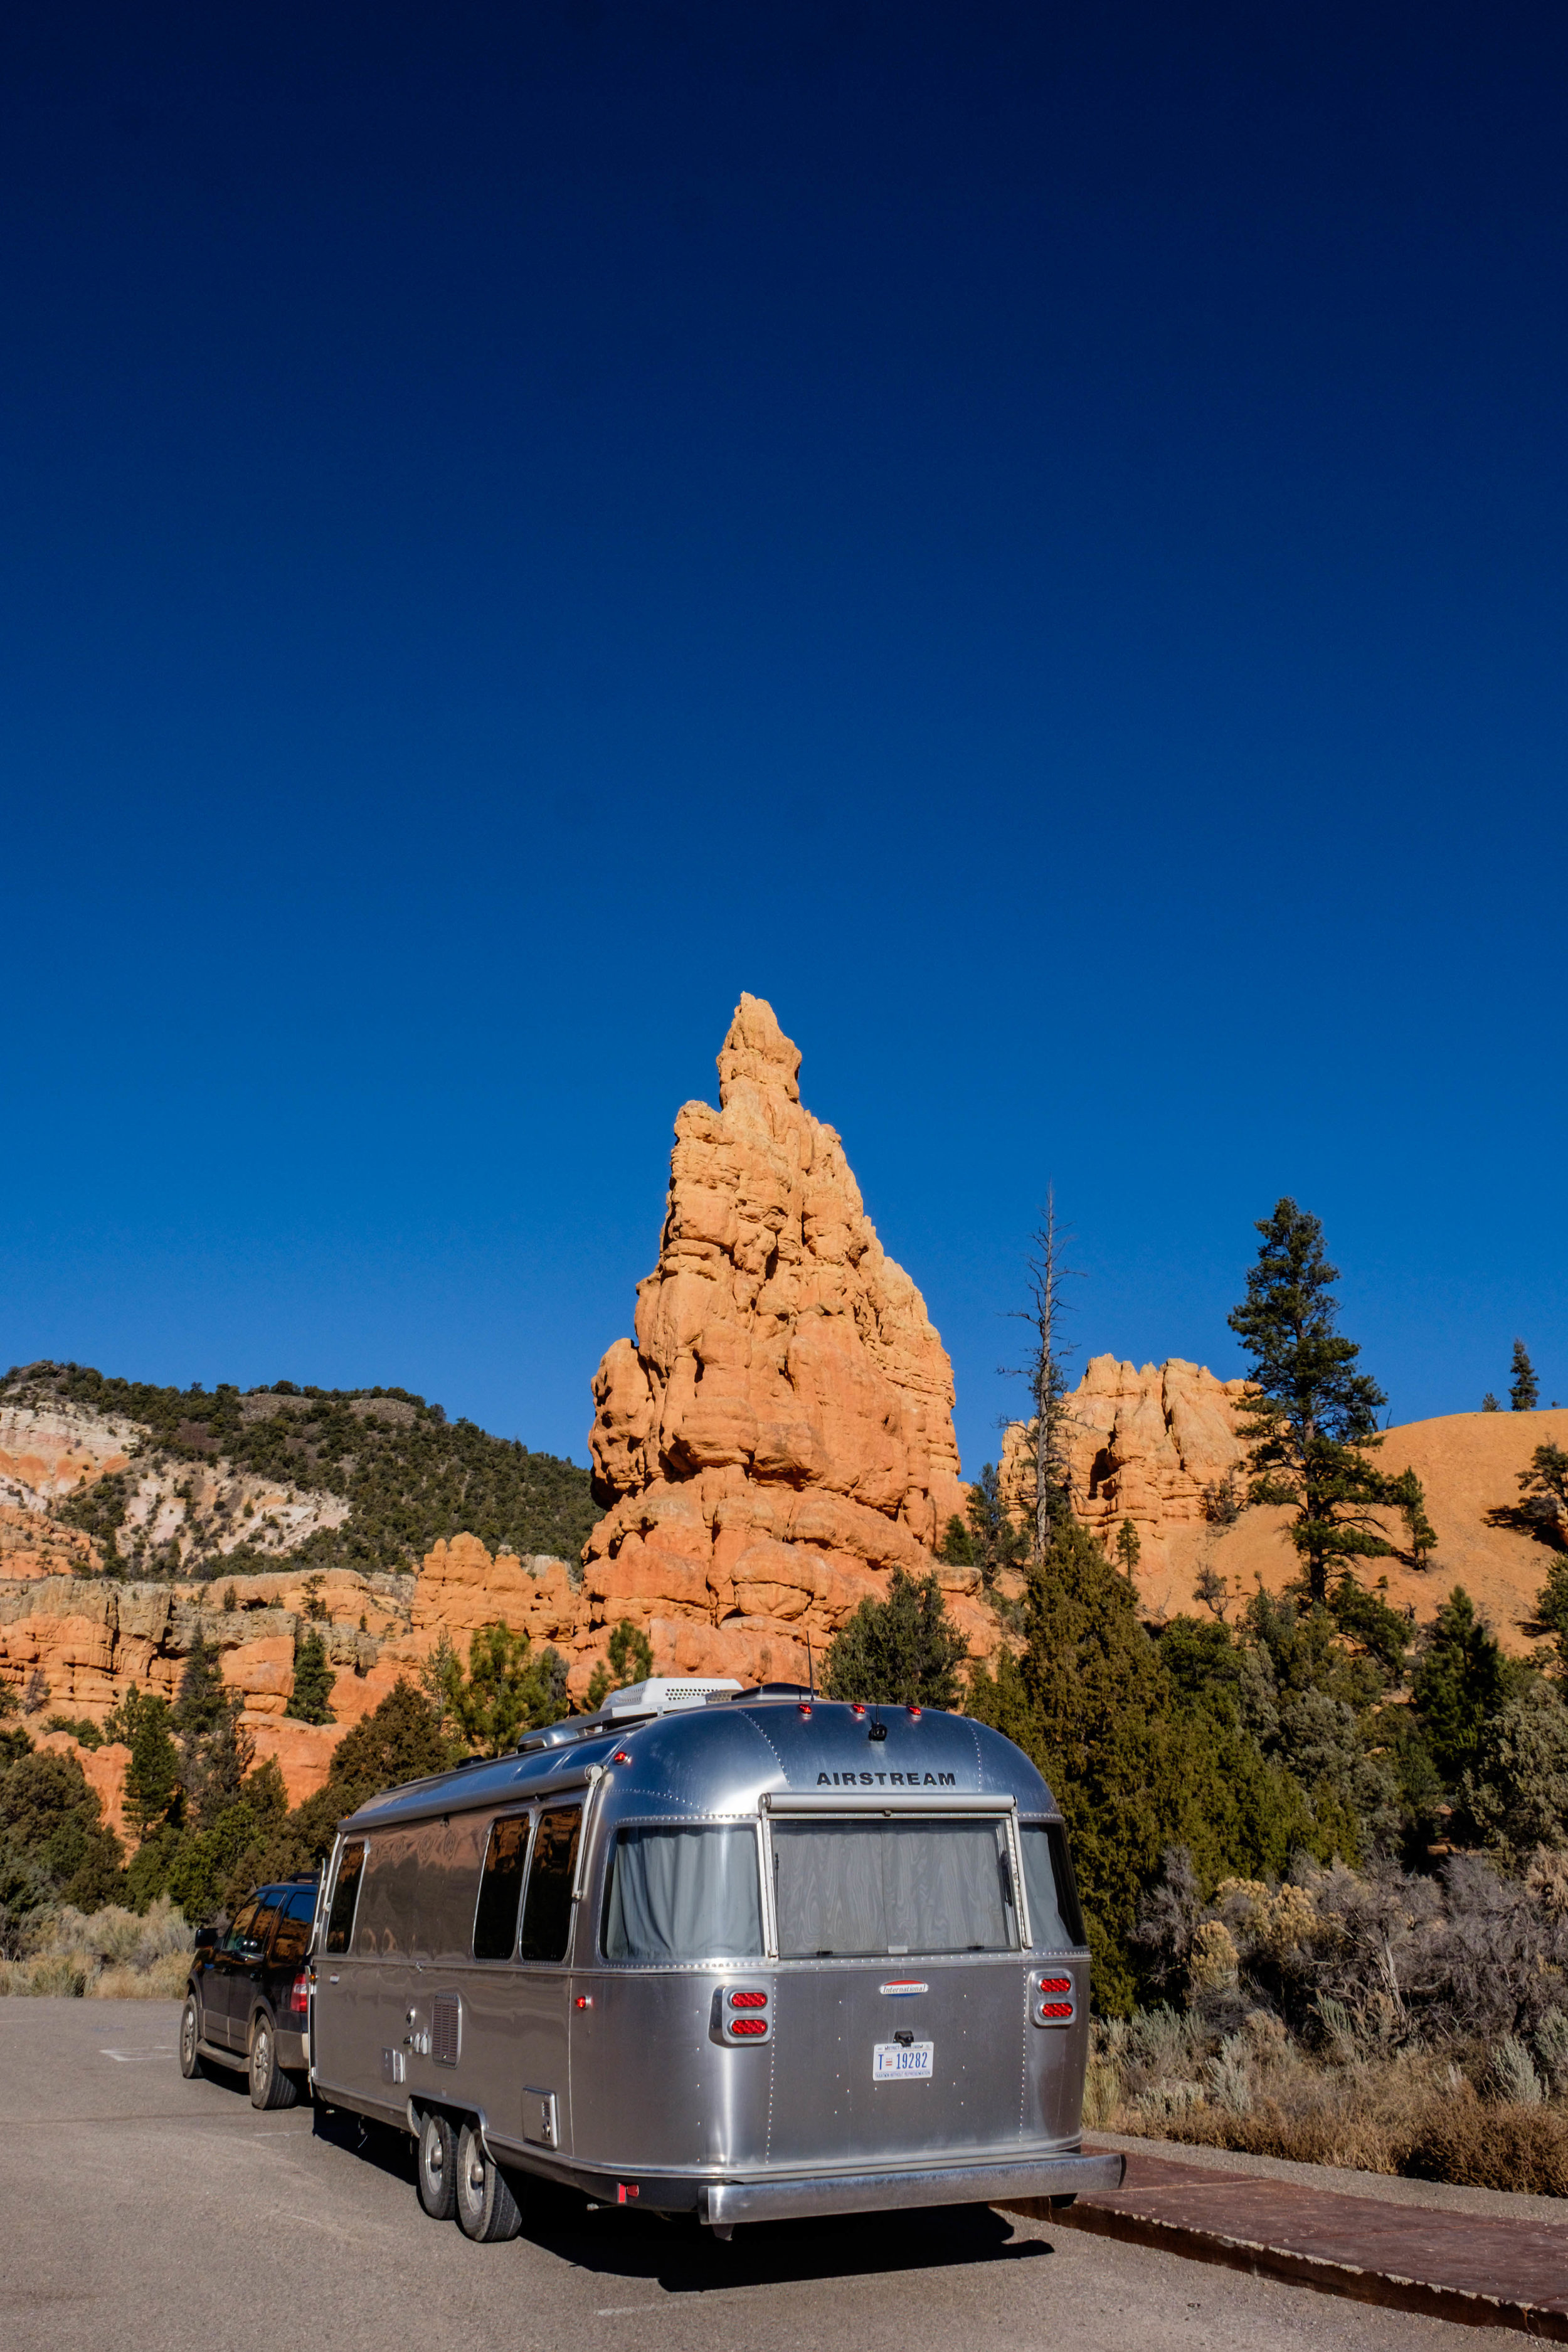 Wally at home in the red rock wonderland of Bryce Canyon!